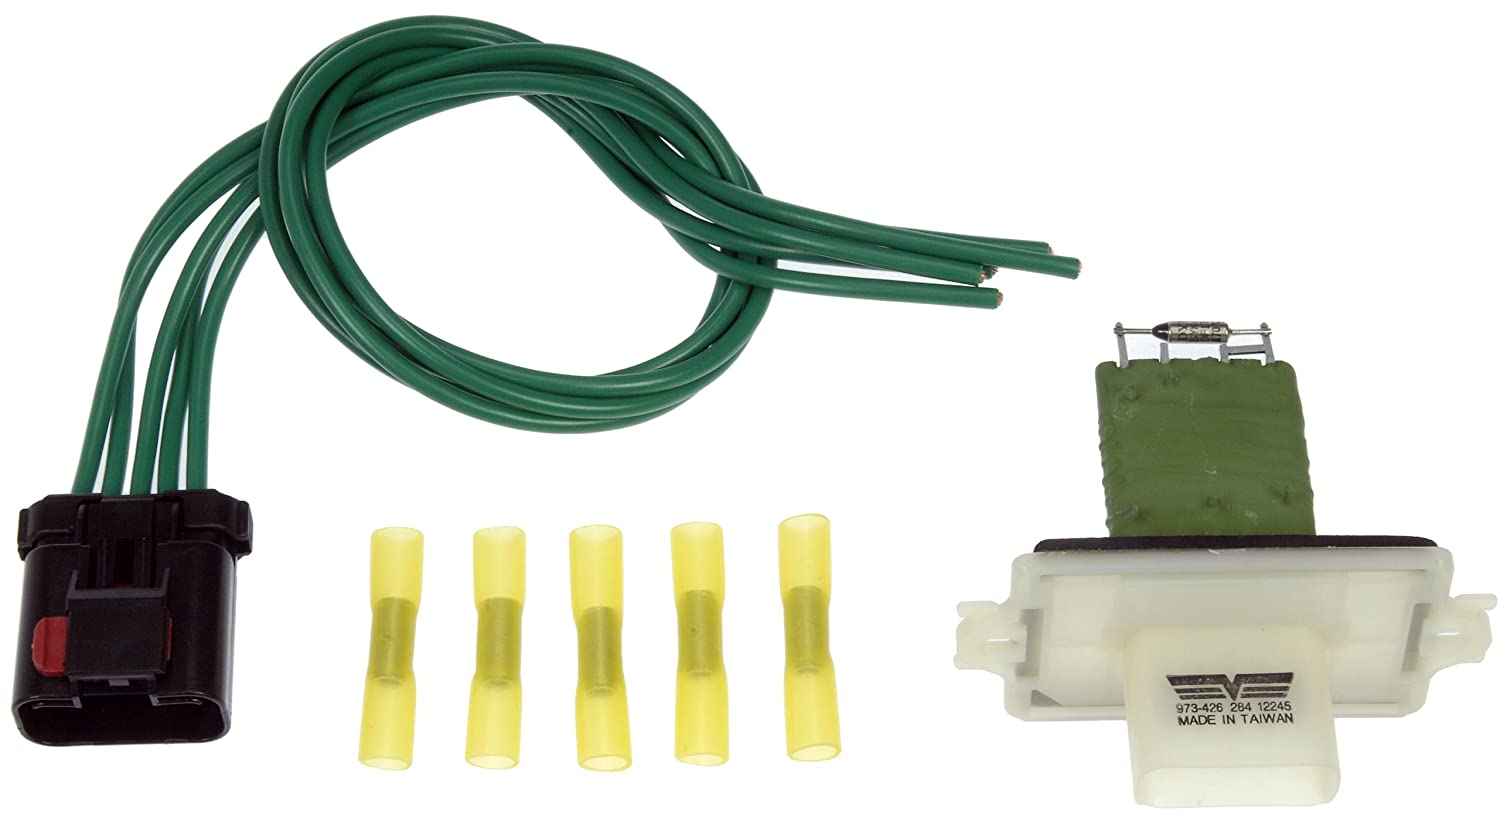 71d6VCcmzNL._SL1500_ amazon com dorman 973 426 blower motor resistor kit automotive blower motor resistor wiring harness at bakdesigns.co